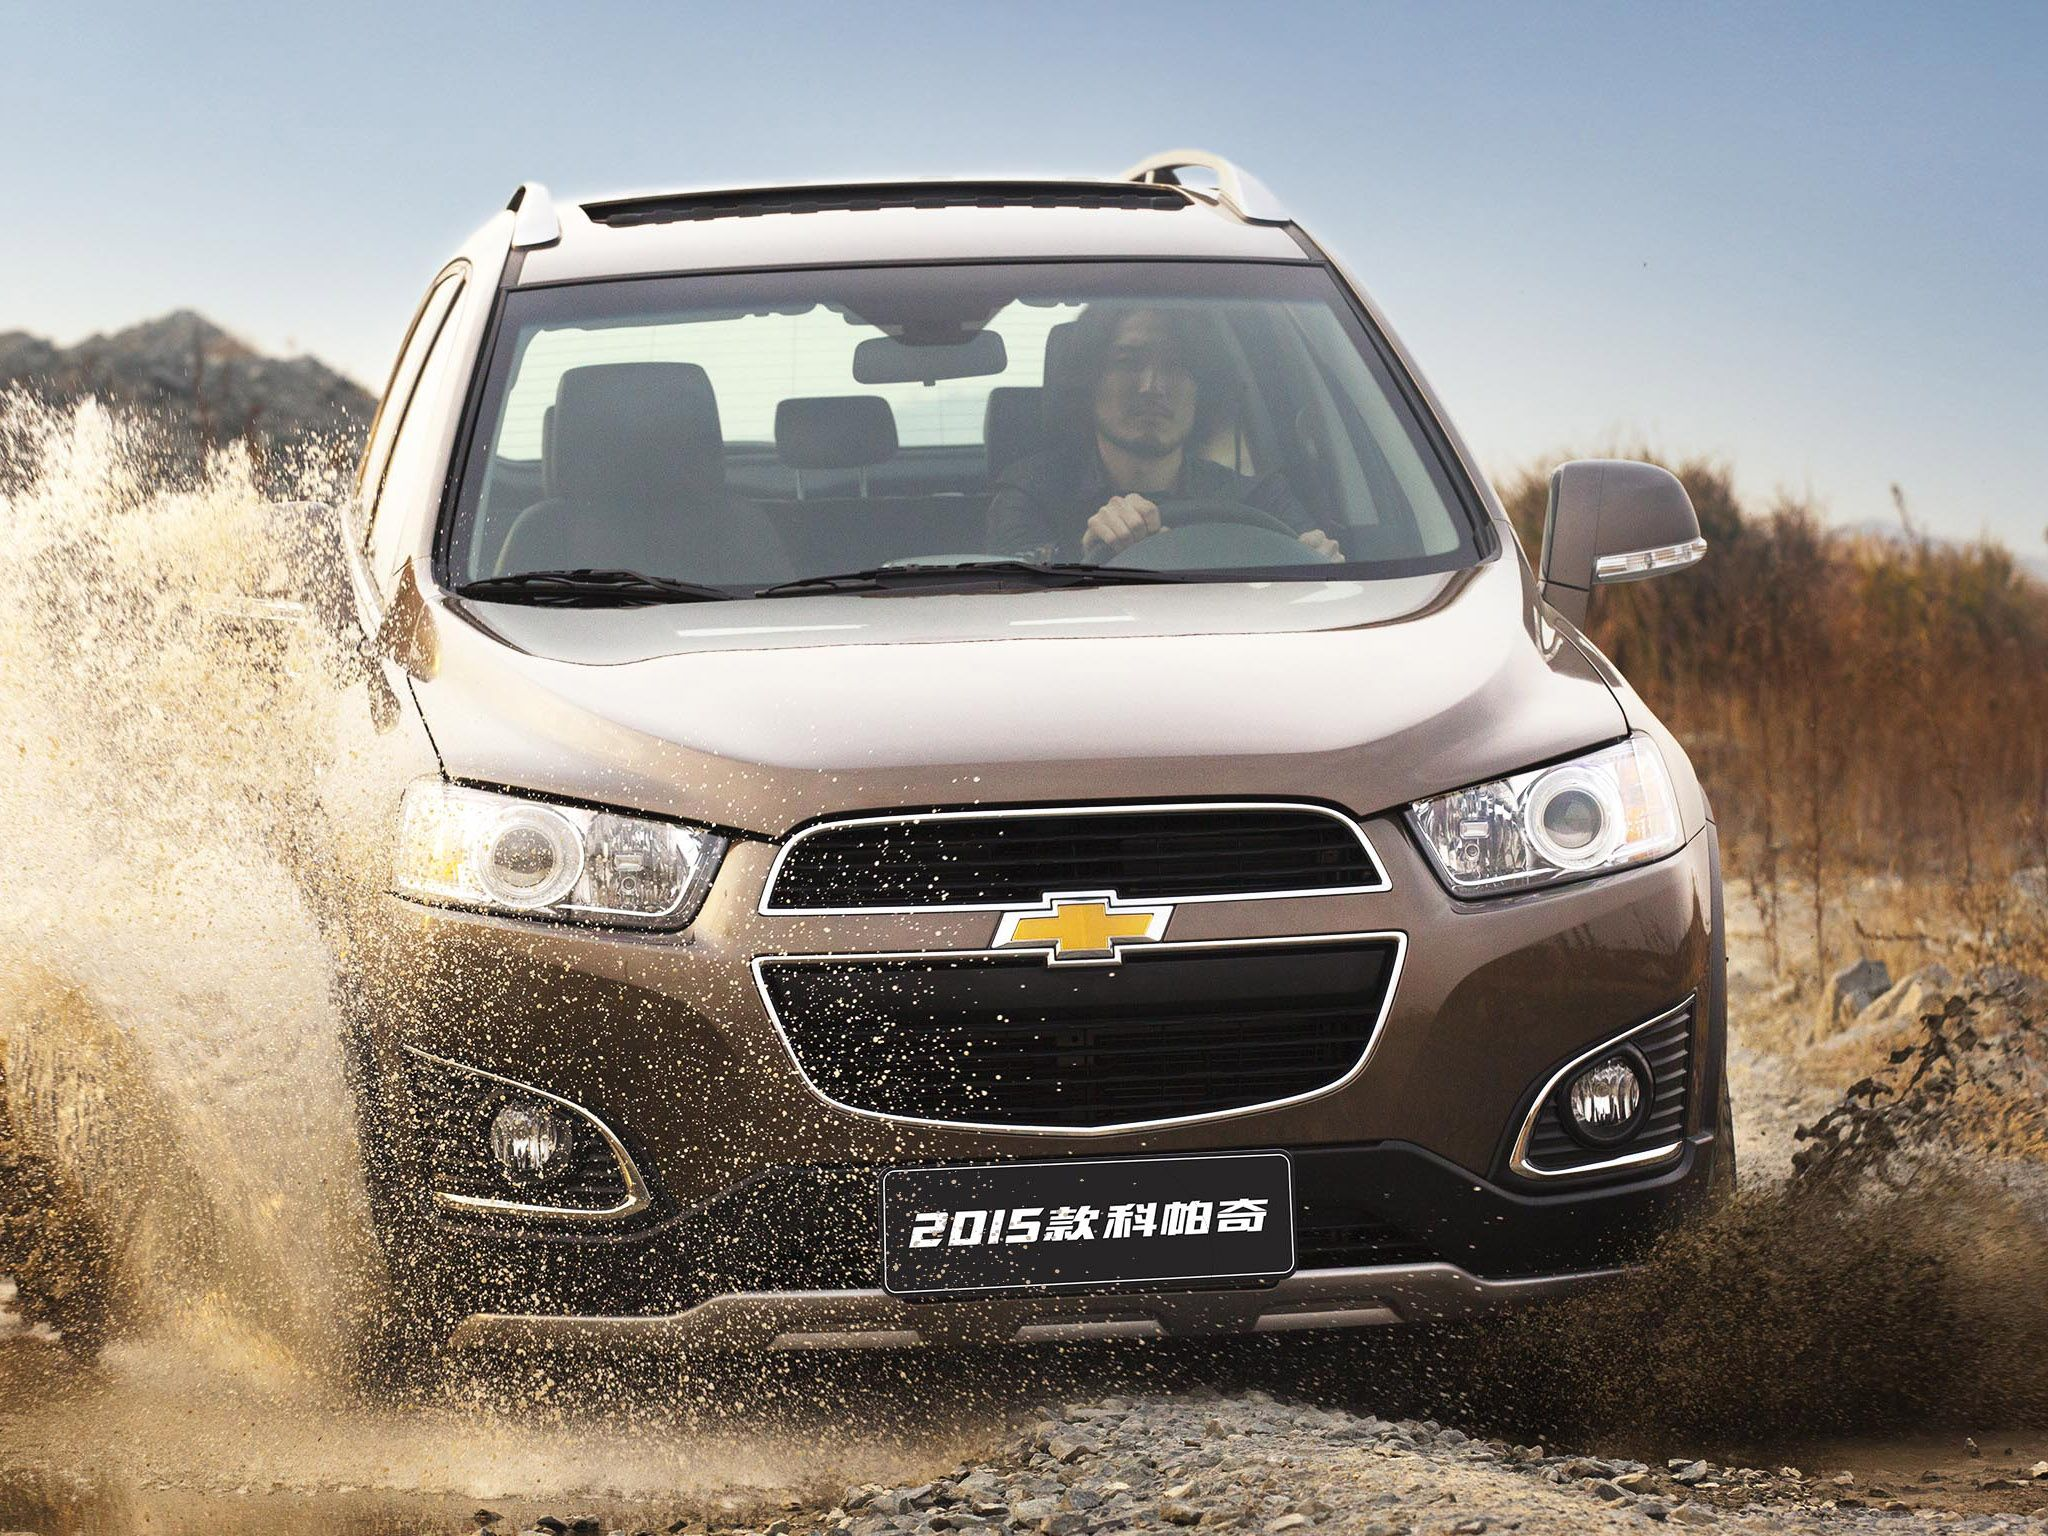 Chevrolet captiva china 2015 chevrolet pinterest china and chevrolet captiva